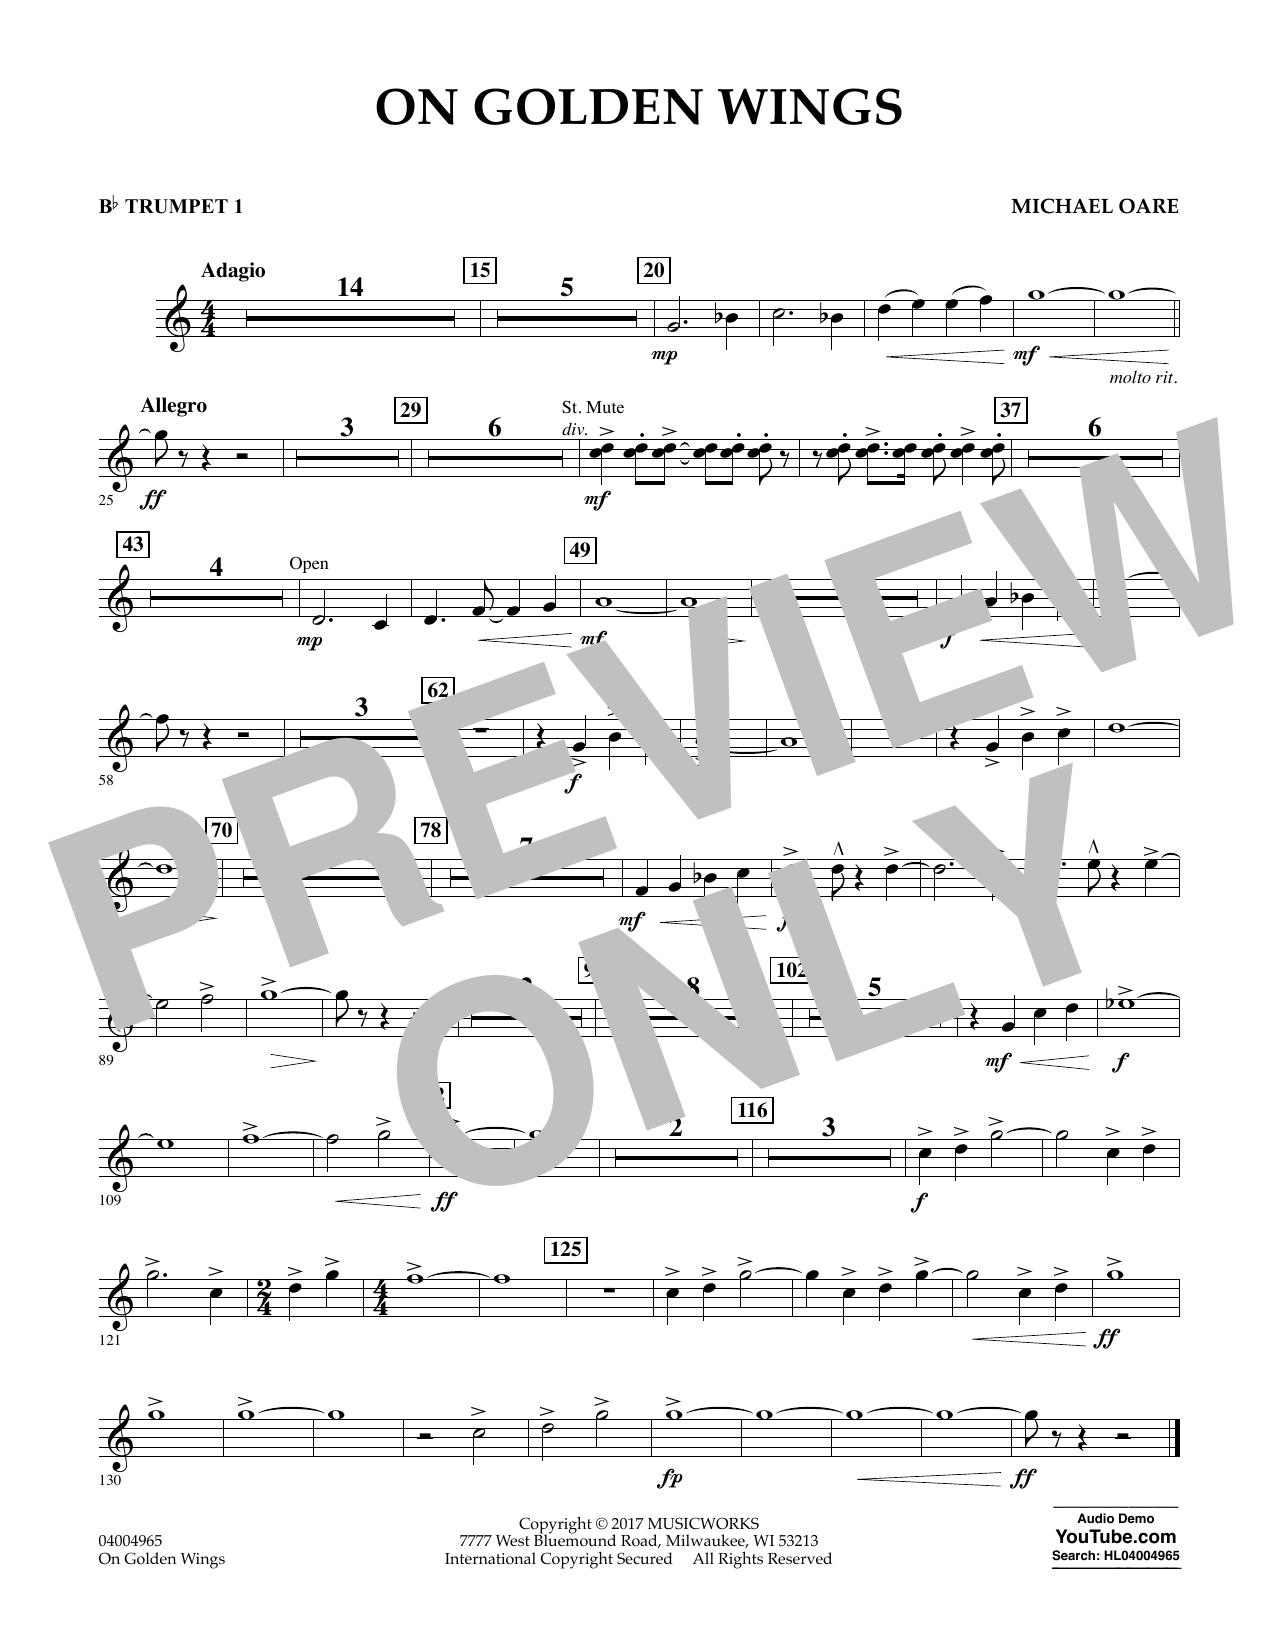 Michael Oare On Golden Wings - Bb Trumpet 1 sheet music notes and chords. Download Printable PDF.